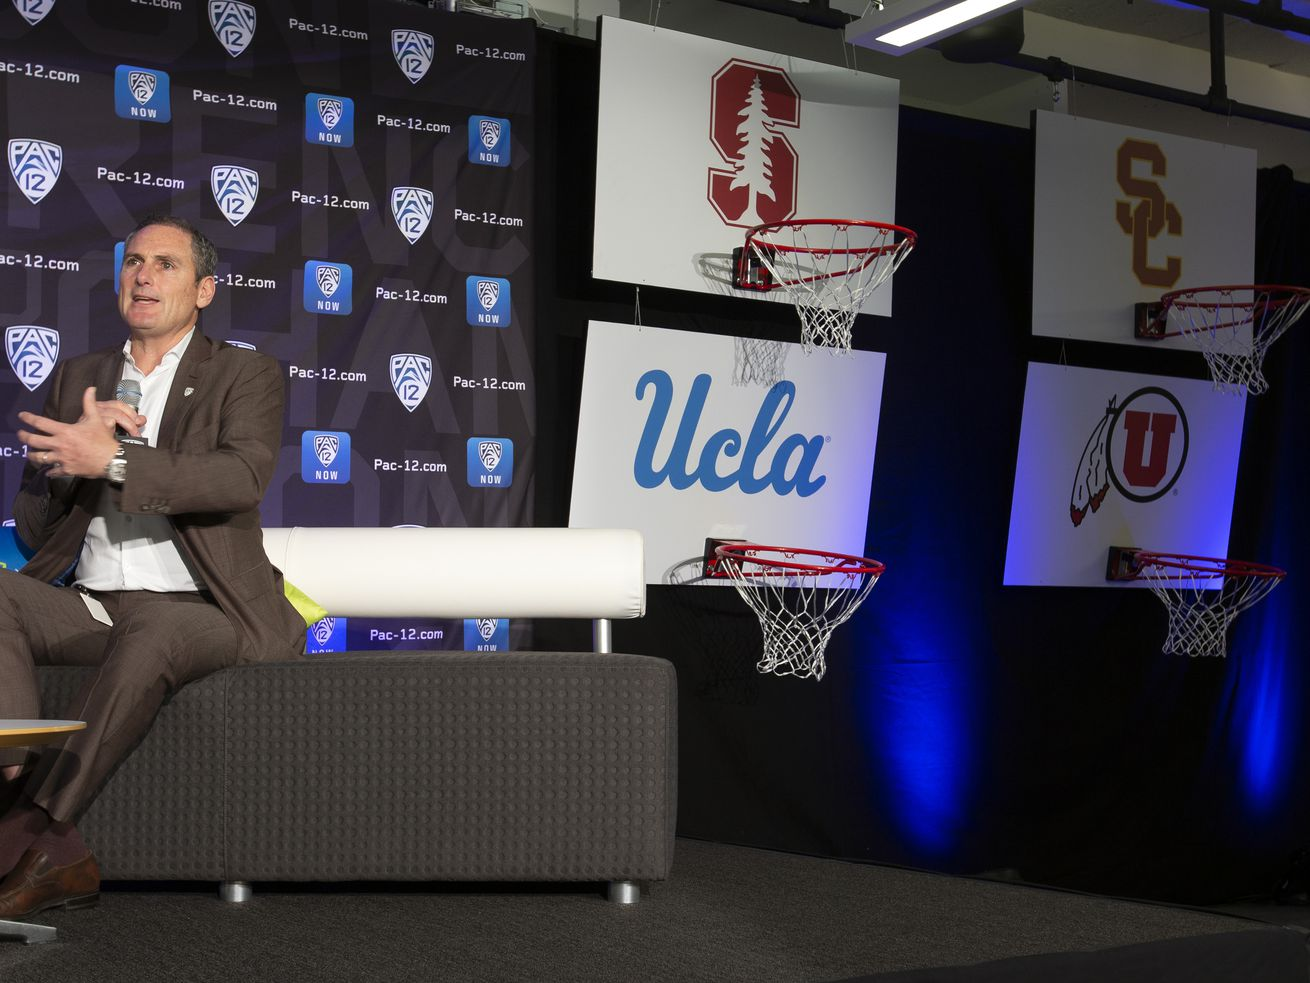 The Pac-12 is parting ways with Larry Scott. Anything different is good